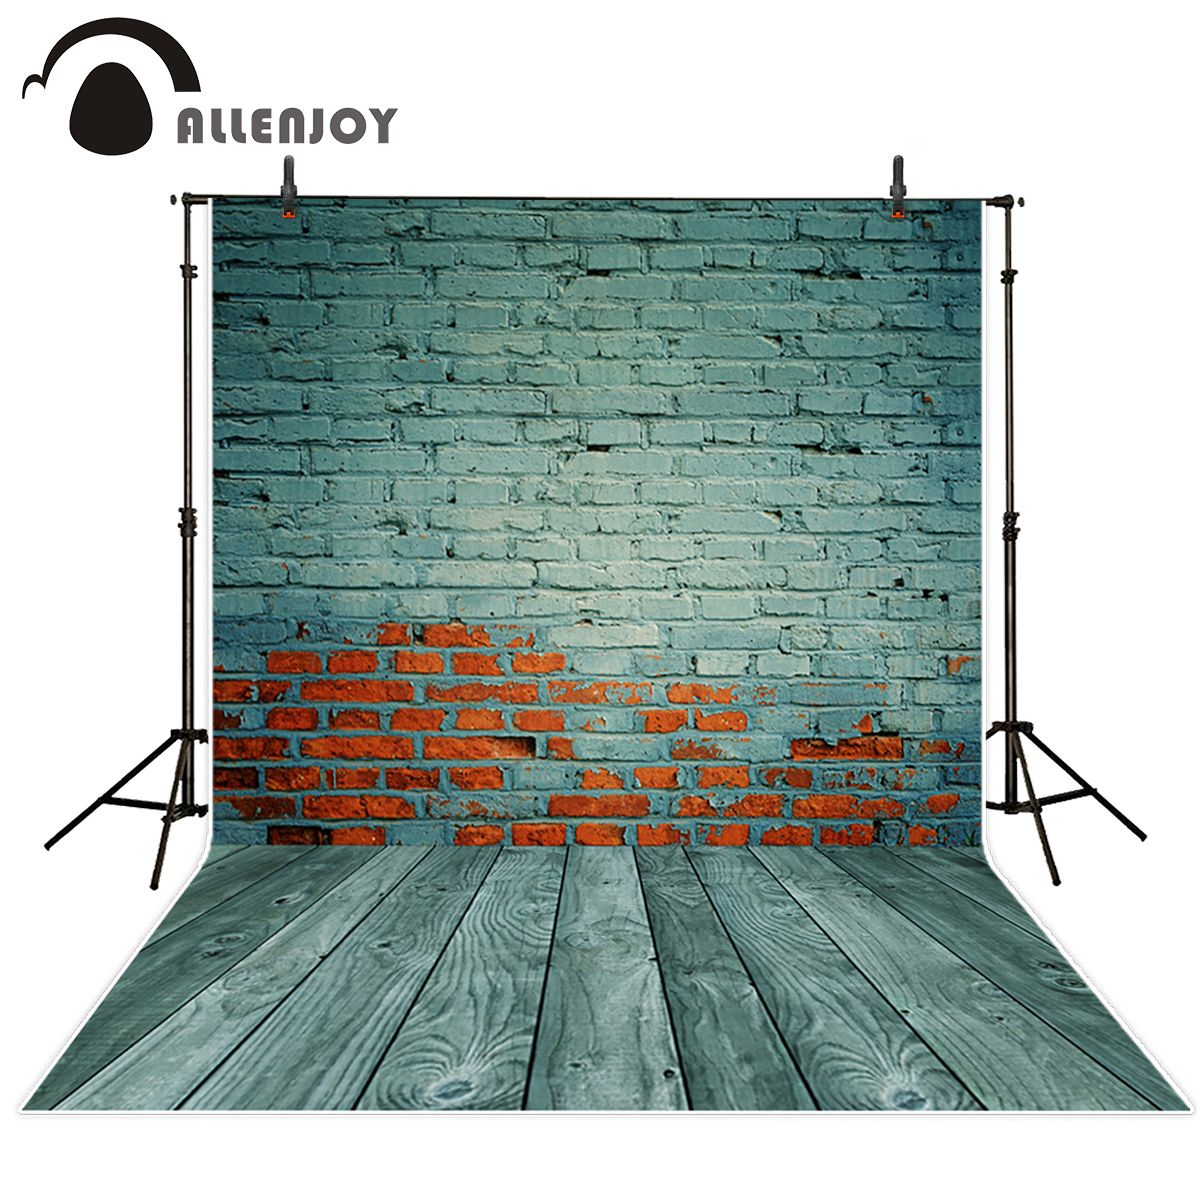 Allenjoy brick wall shiny golden bulbs background vintage fashion backdrop photocall for a photo shoot photo booth brick backdrop backdrops brick